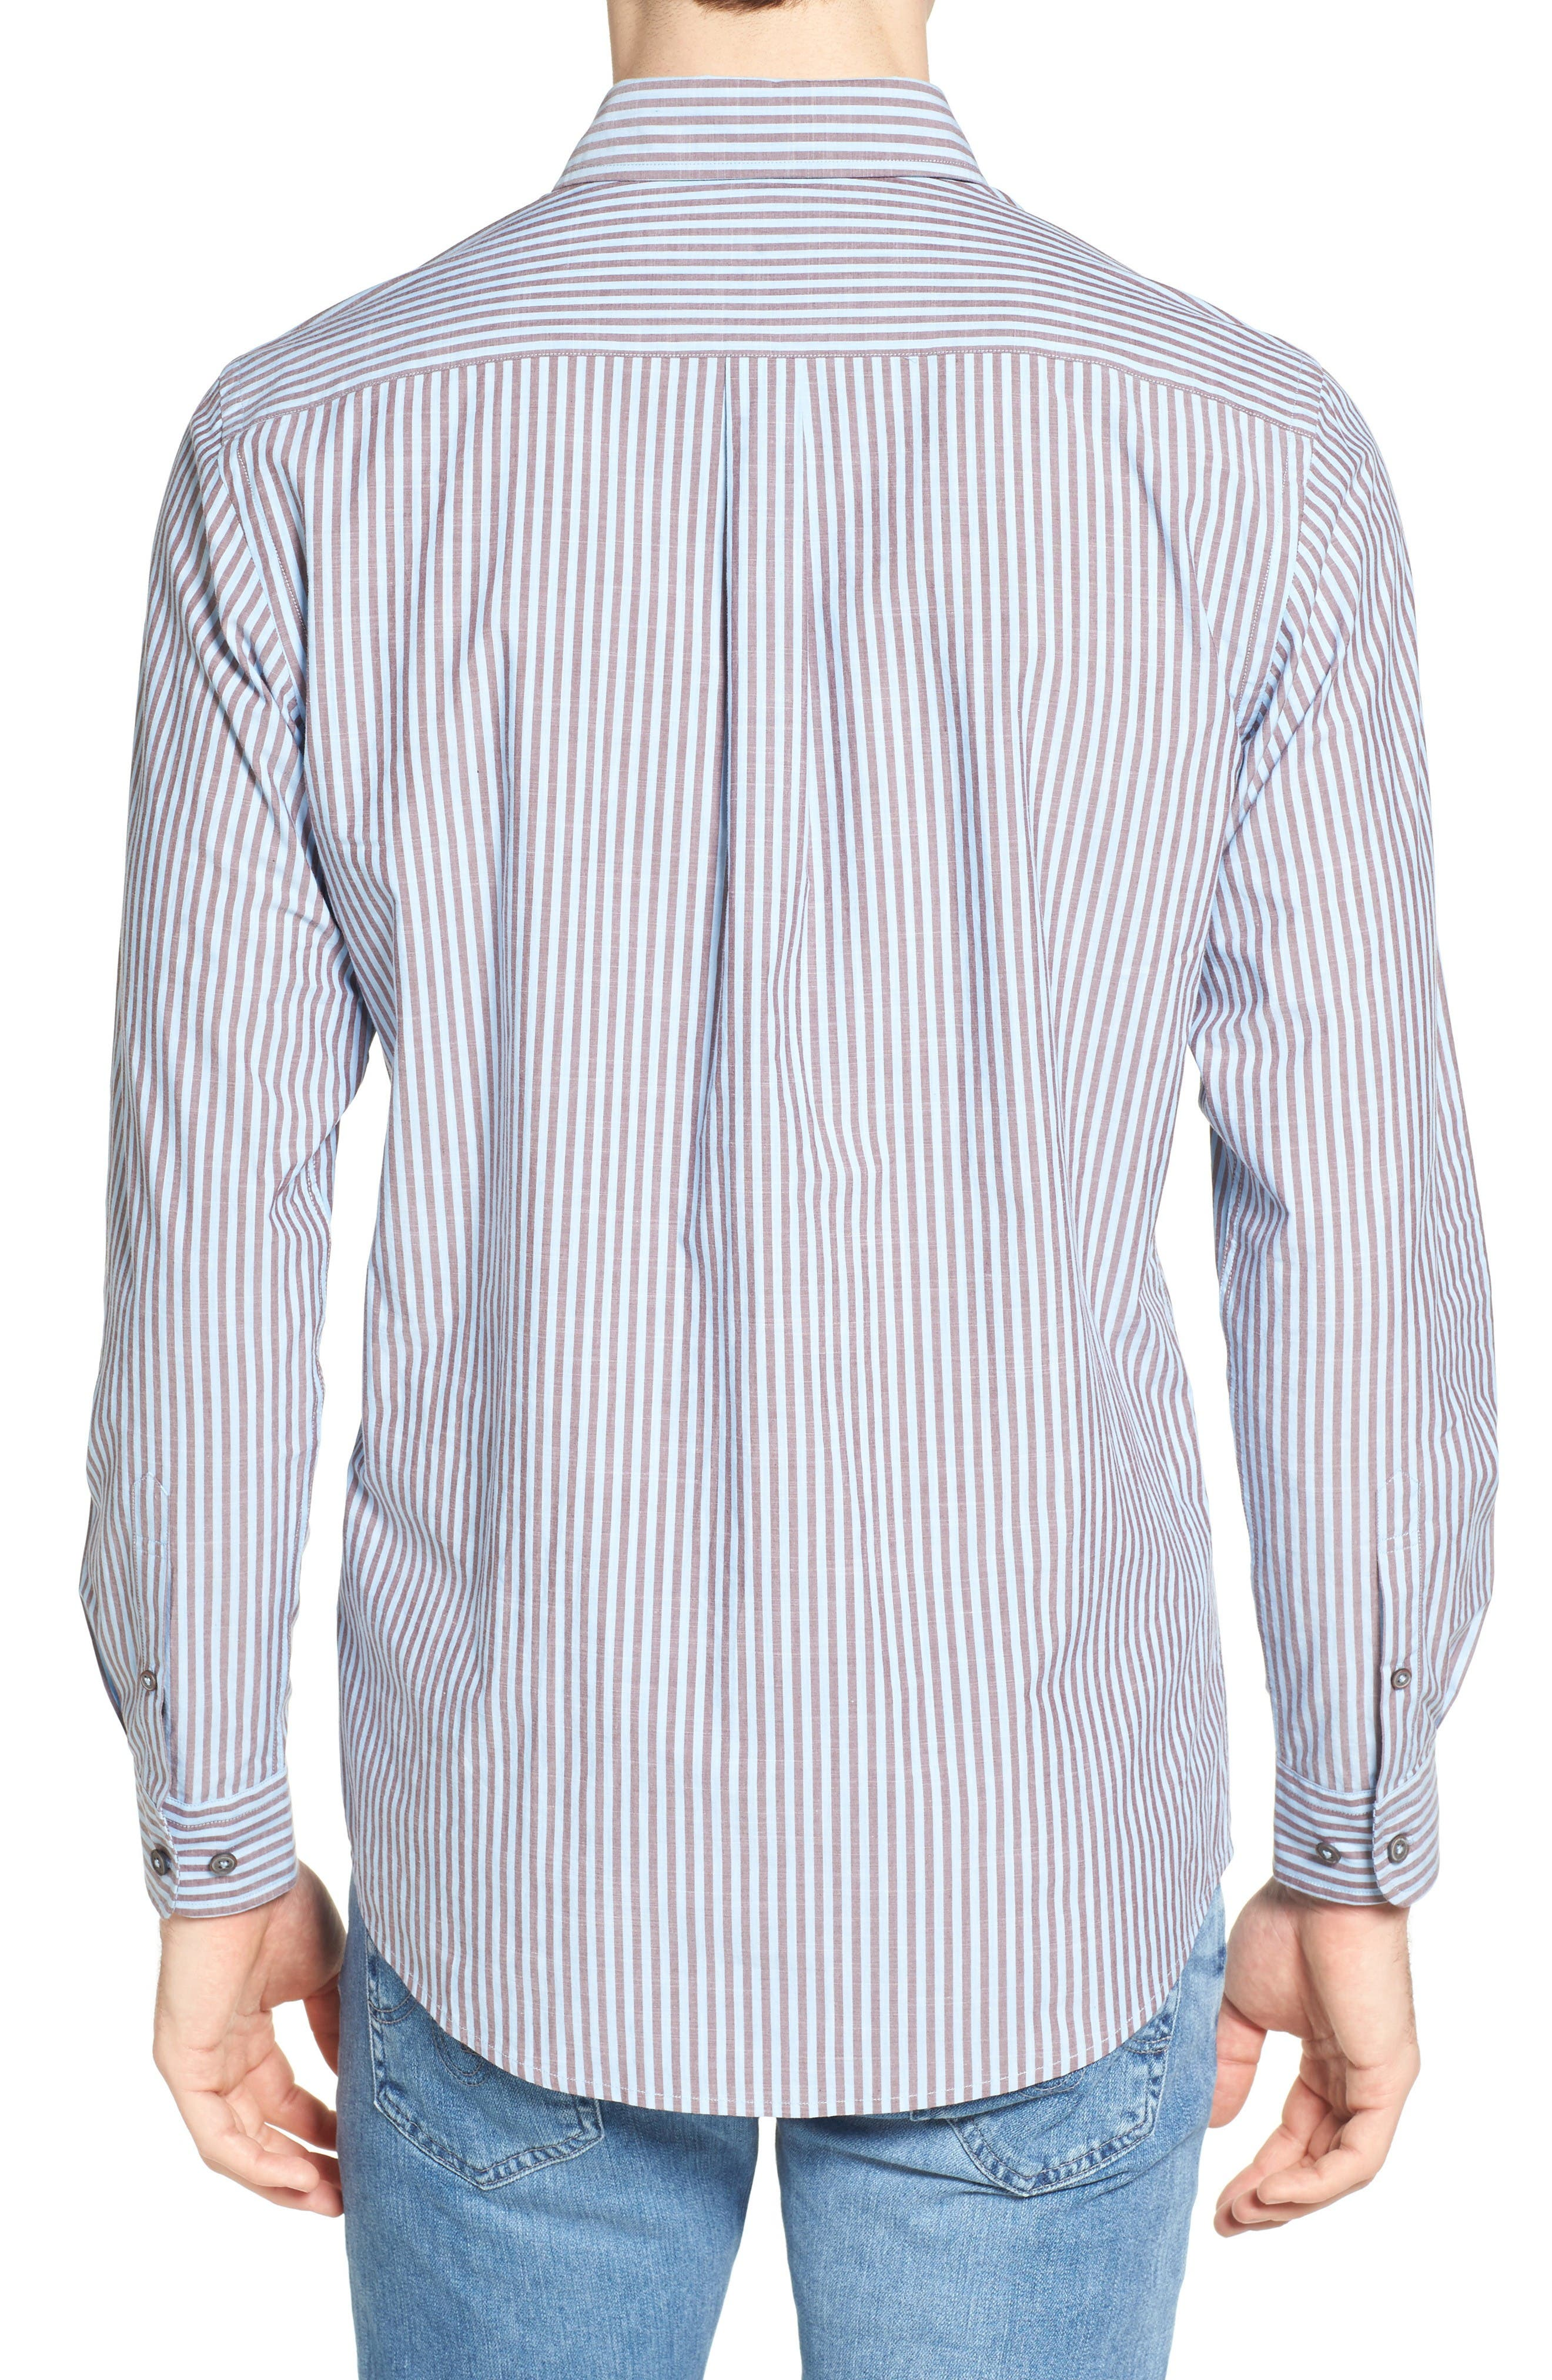 Fitzroy Stripe Sport Shirt,                             Alternate thumbnail 2, color,                             Sky